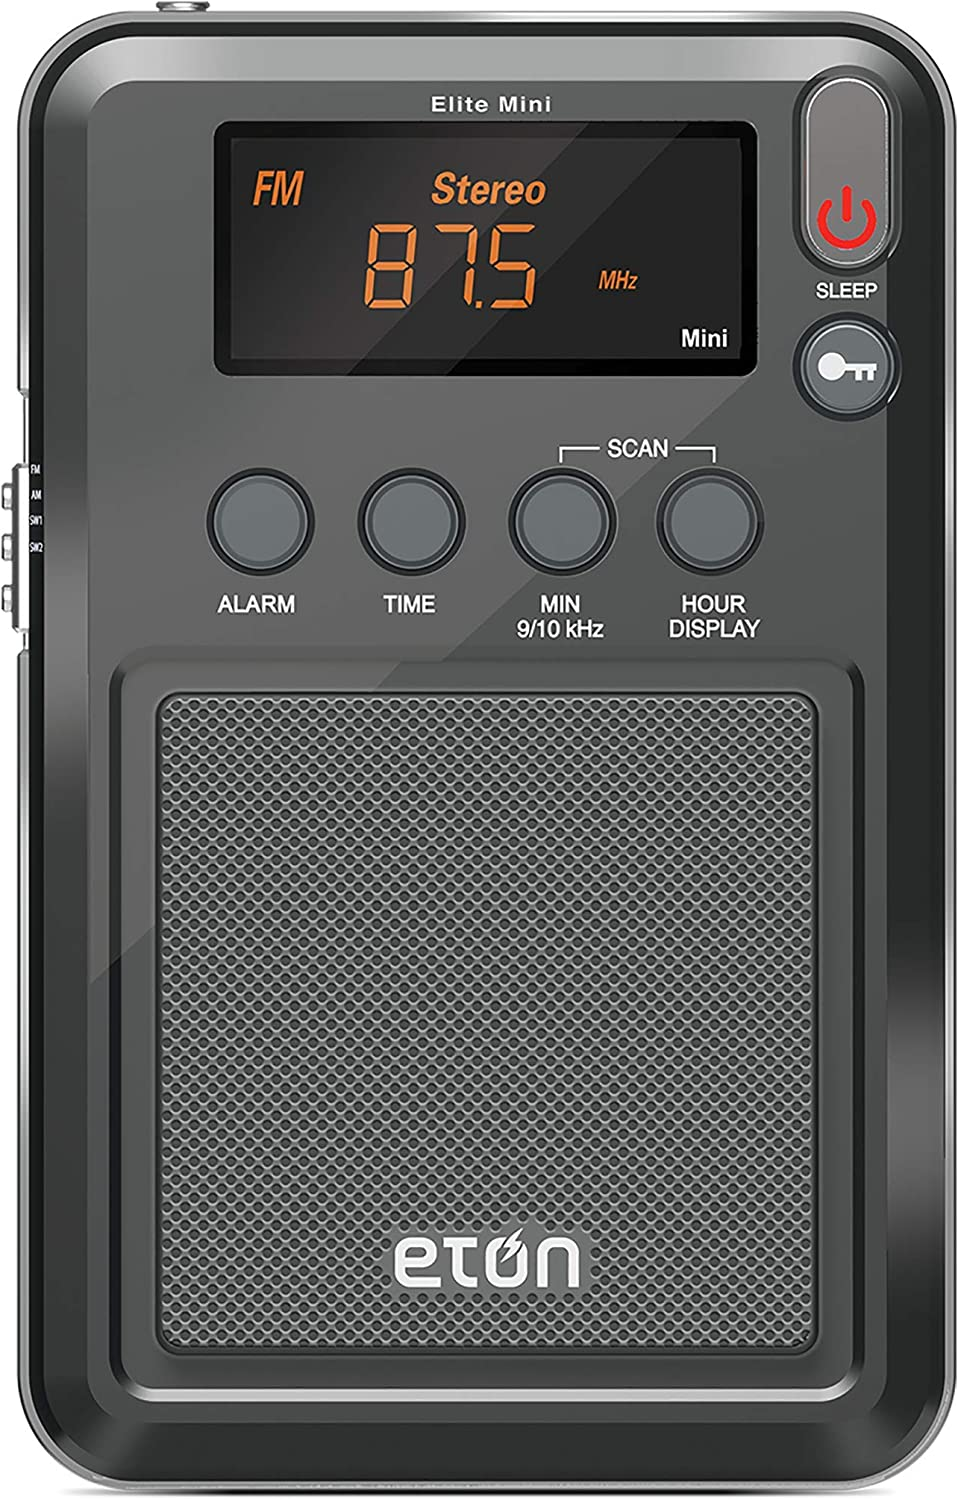 Eton Elite Mini Compact AM/FM/Shortwave Radio